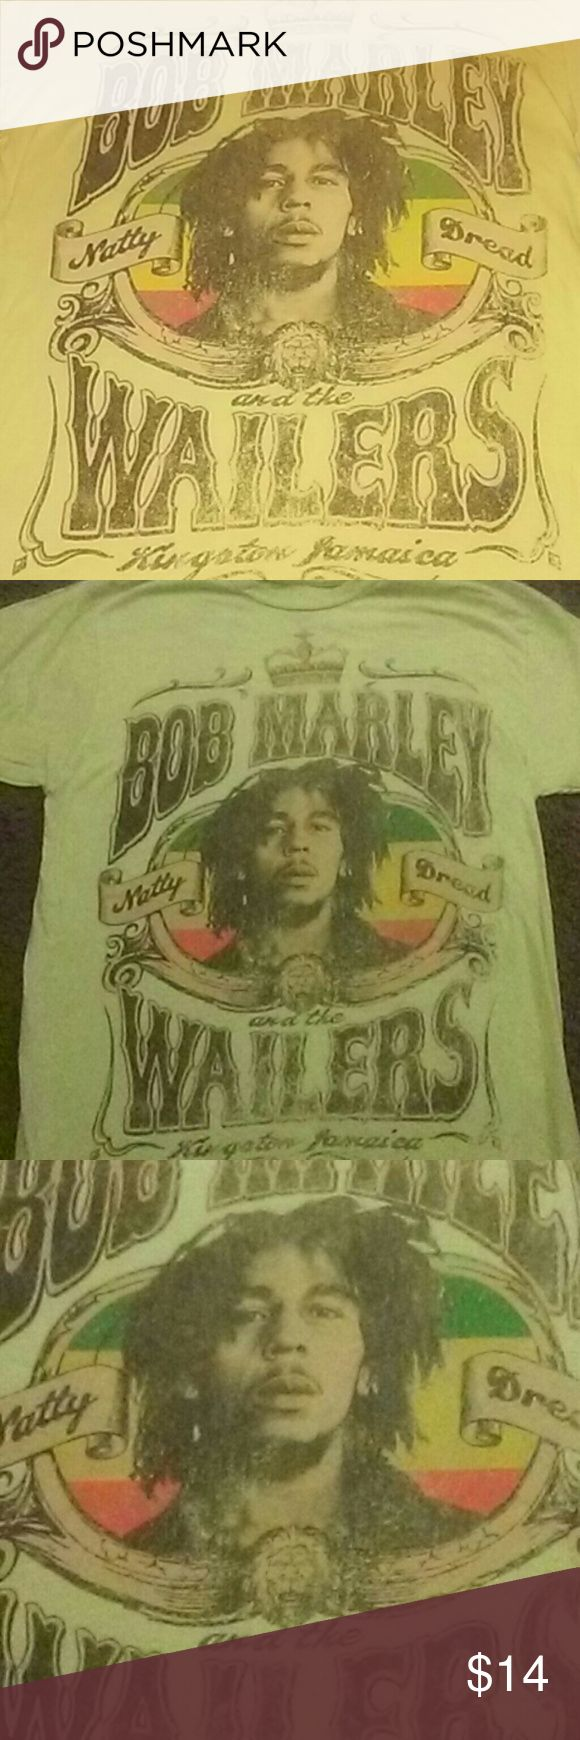 "Bob Marley ""Natty Dread"" T-shirt -Lg Mens Gently used Bob Marley T-shirt. Pale yellow with a faded vintage look and feel to it. Very unique and MUST HAVE T-shirt for all Marley fans!! Says ""Natty Dread"" on side of his face and Bob Marley and  the Wailers Kingston Jamaica. Zion Rootswear Shirts Tees - Short Sleeve"